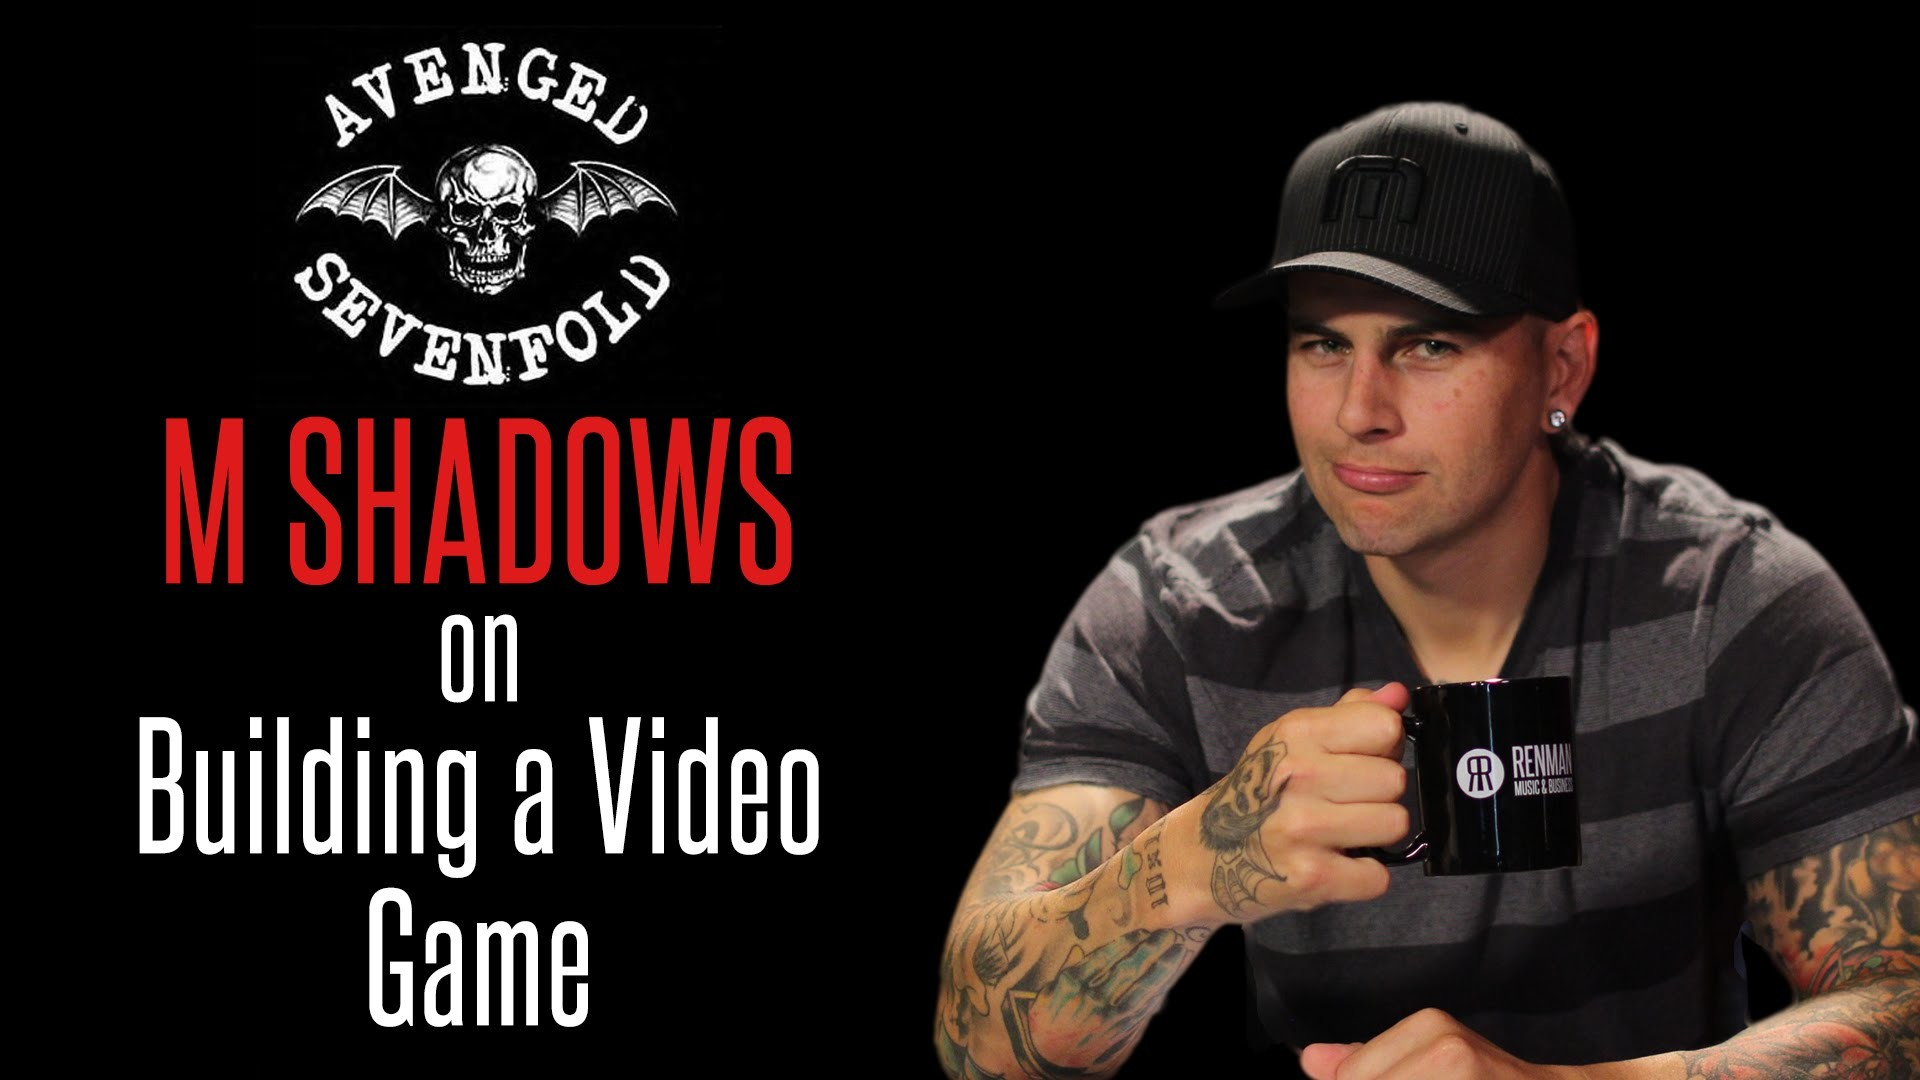 "1920x1080 M Shadows of Avenged Sevenfold on Building the Video Game ""Death Bat"" -  YouTube"